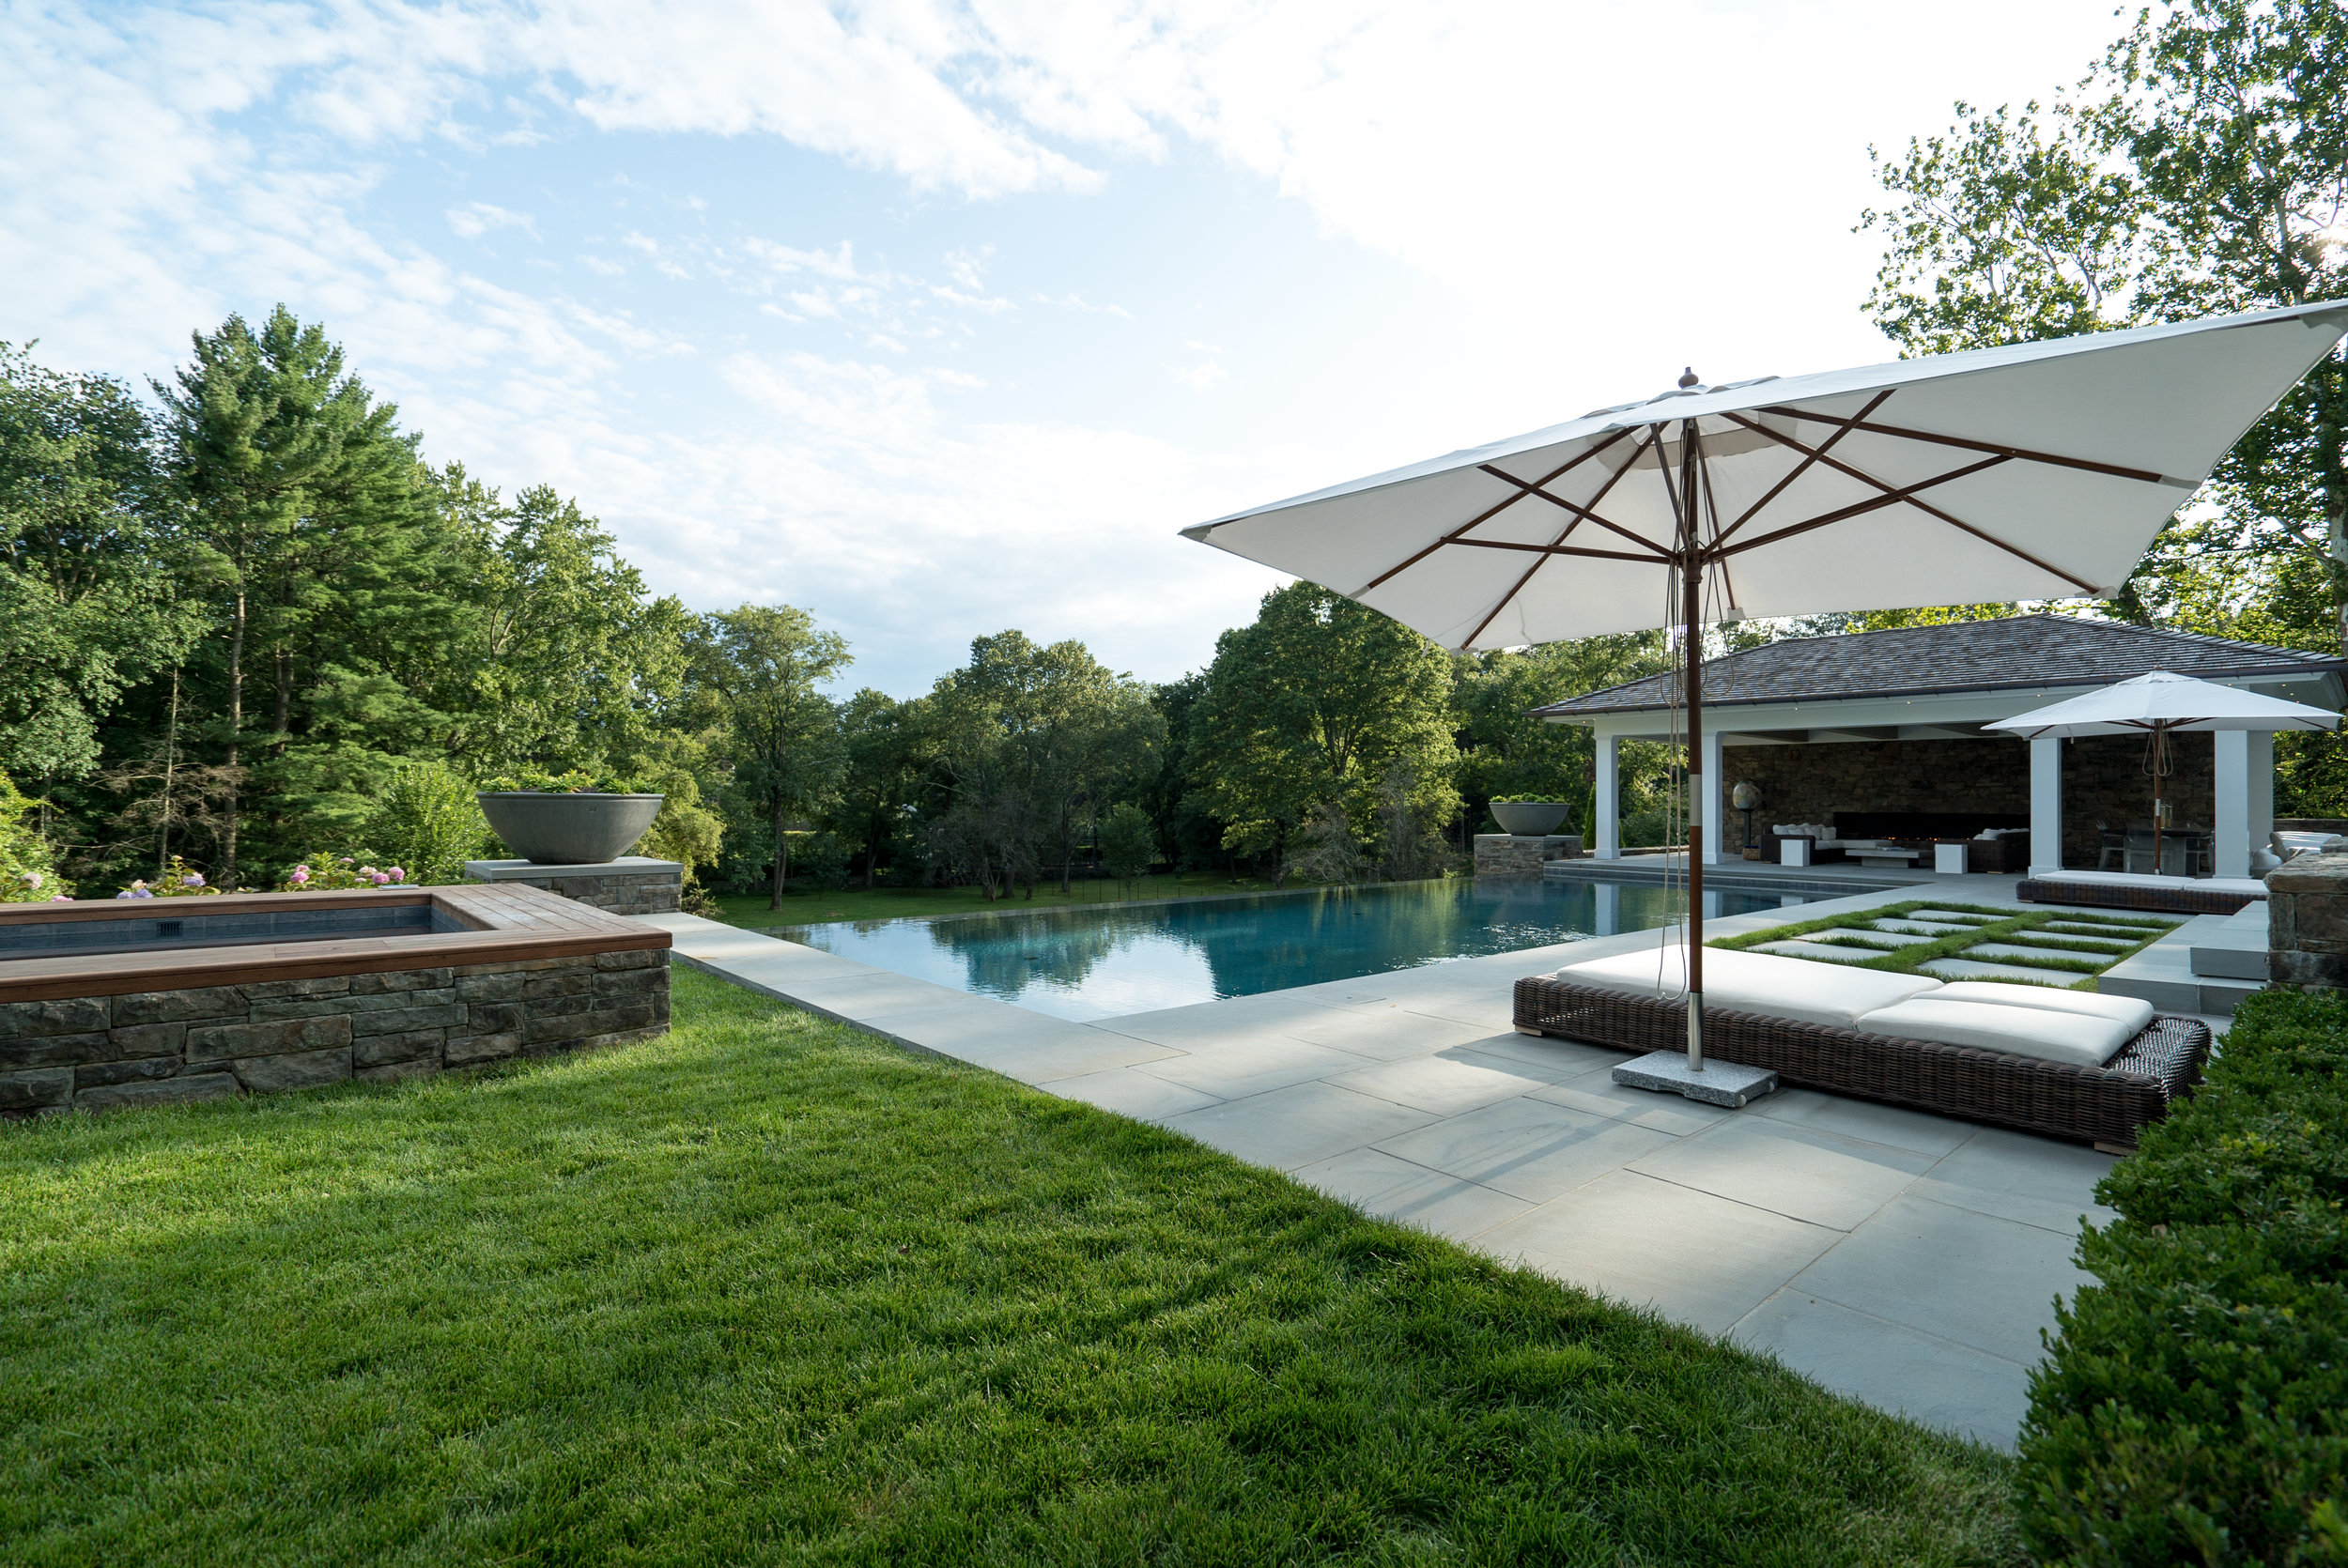 MATERIALS USED: BROOKLINE THINSTONE HOT TUB, THERMAL BLUESTONE POOL SURROUND